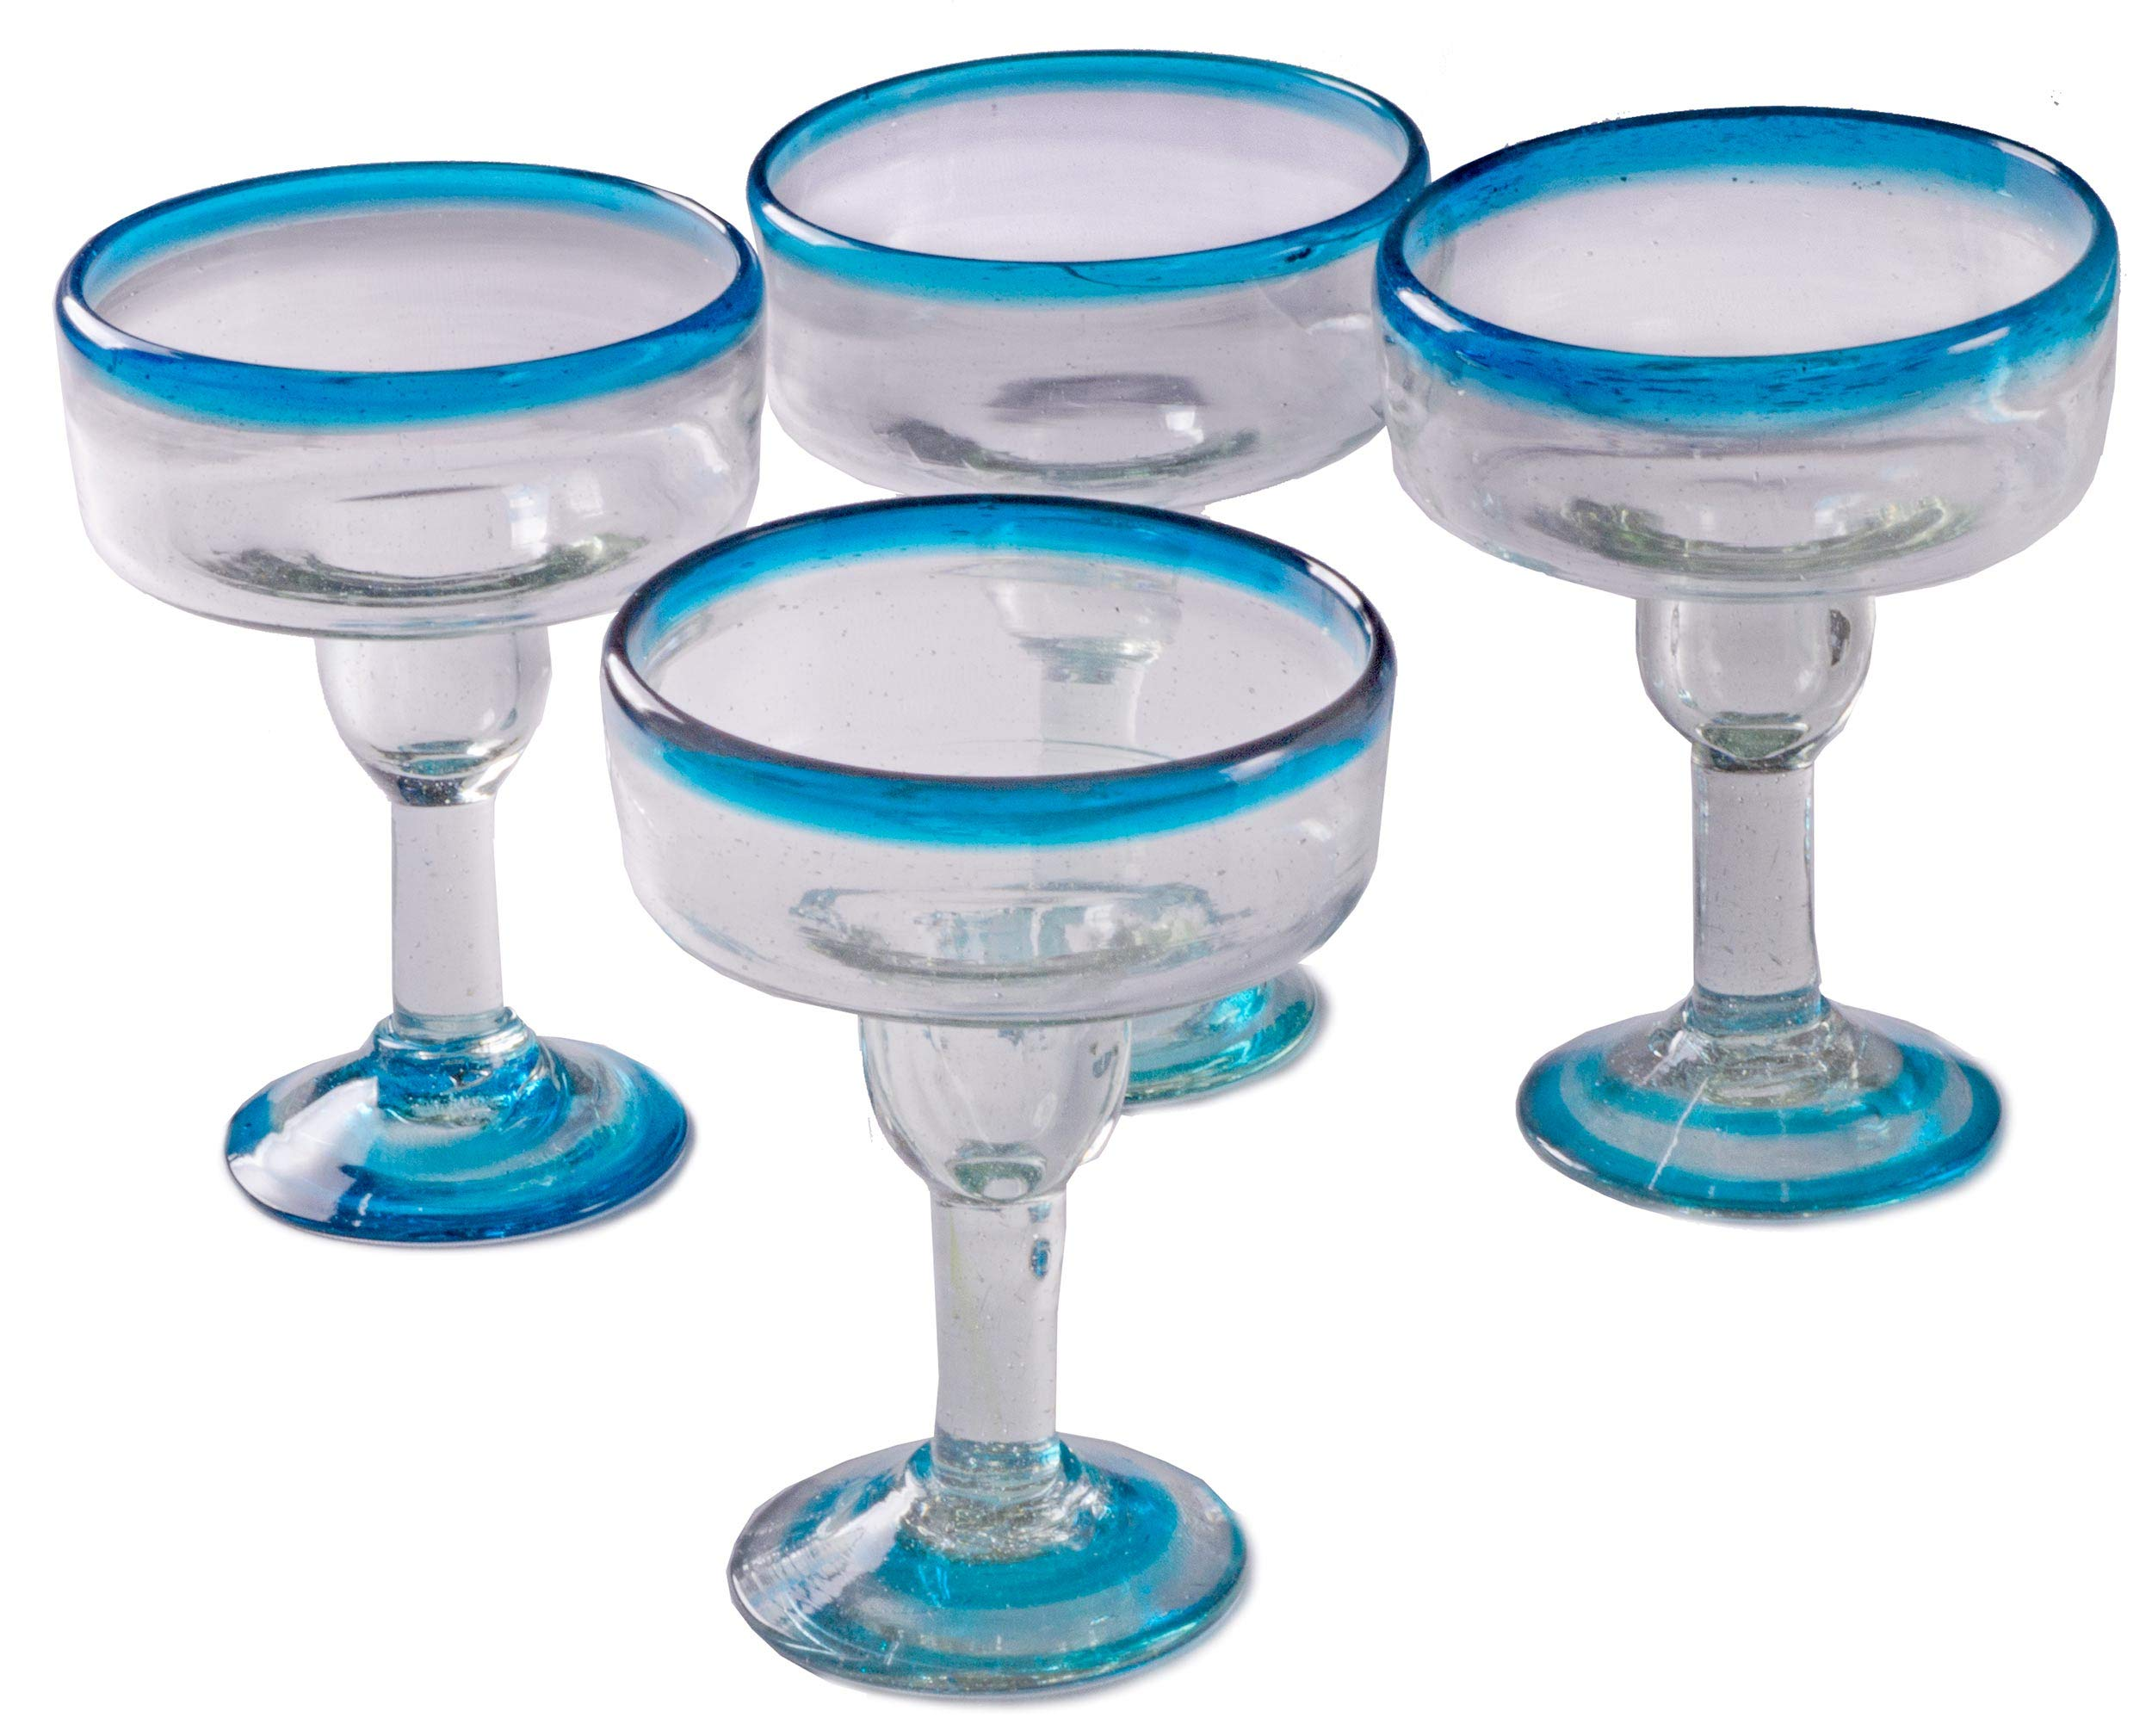 Orion Turquoise Rim 12 oz Margarita Coupette - Set of 4